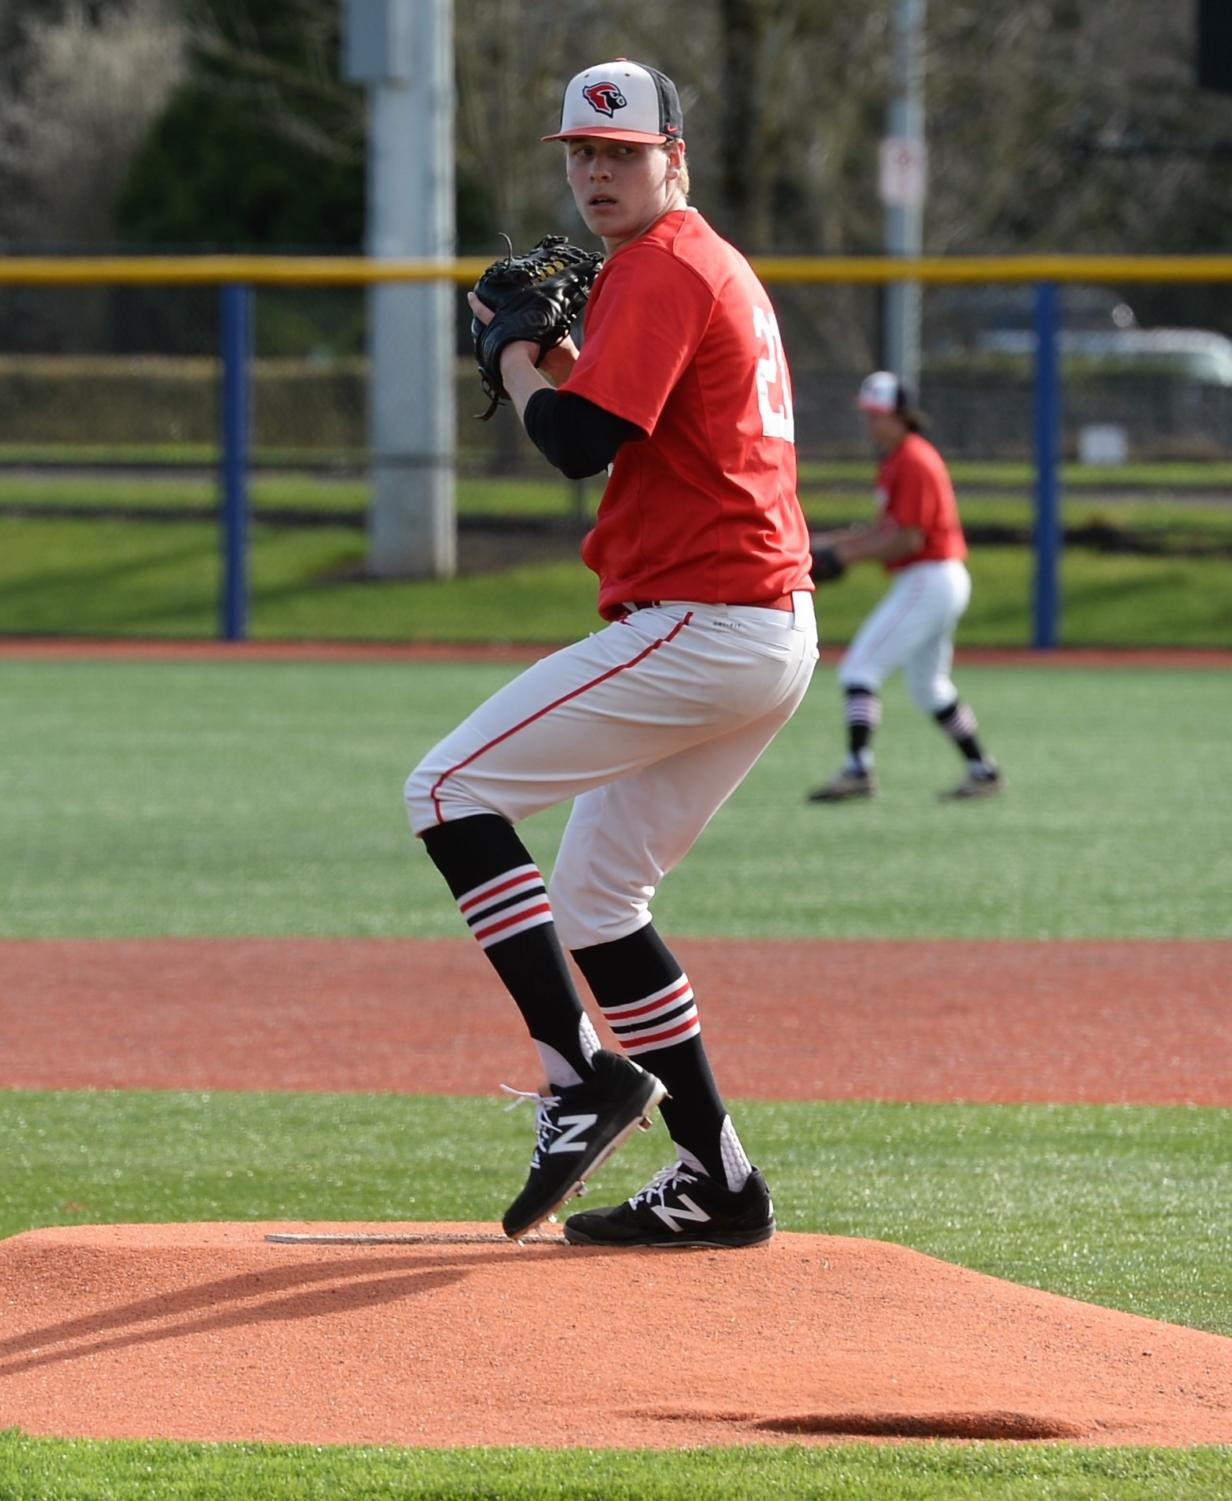 Senior Zane Mills pitches the ball during a game against Madison on April 10. Mills will play baseball for the Washington State Cougars next year.